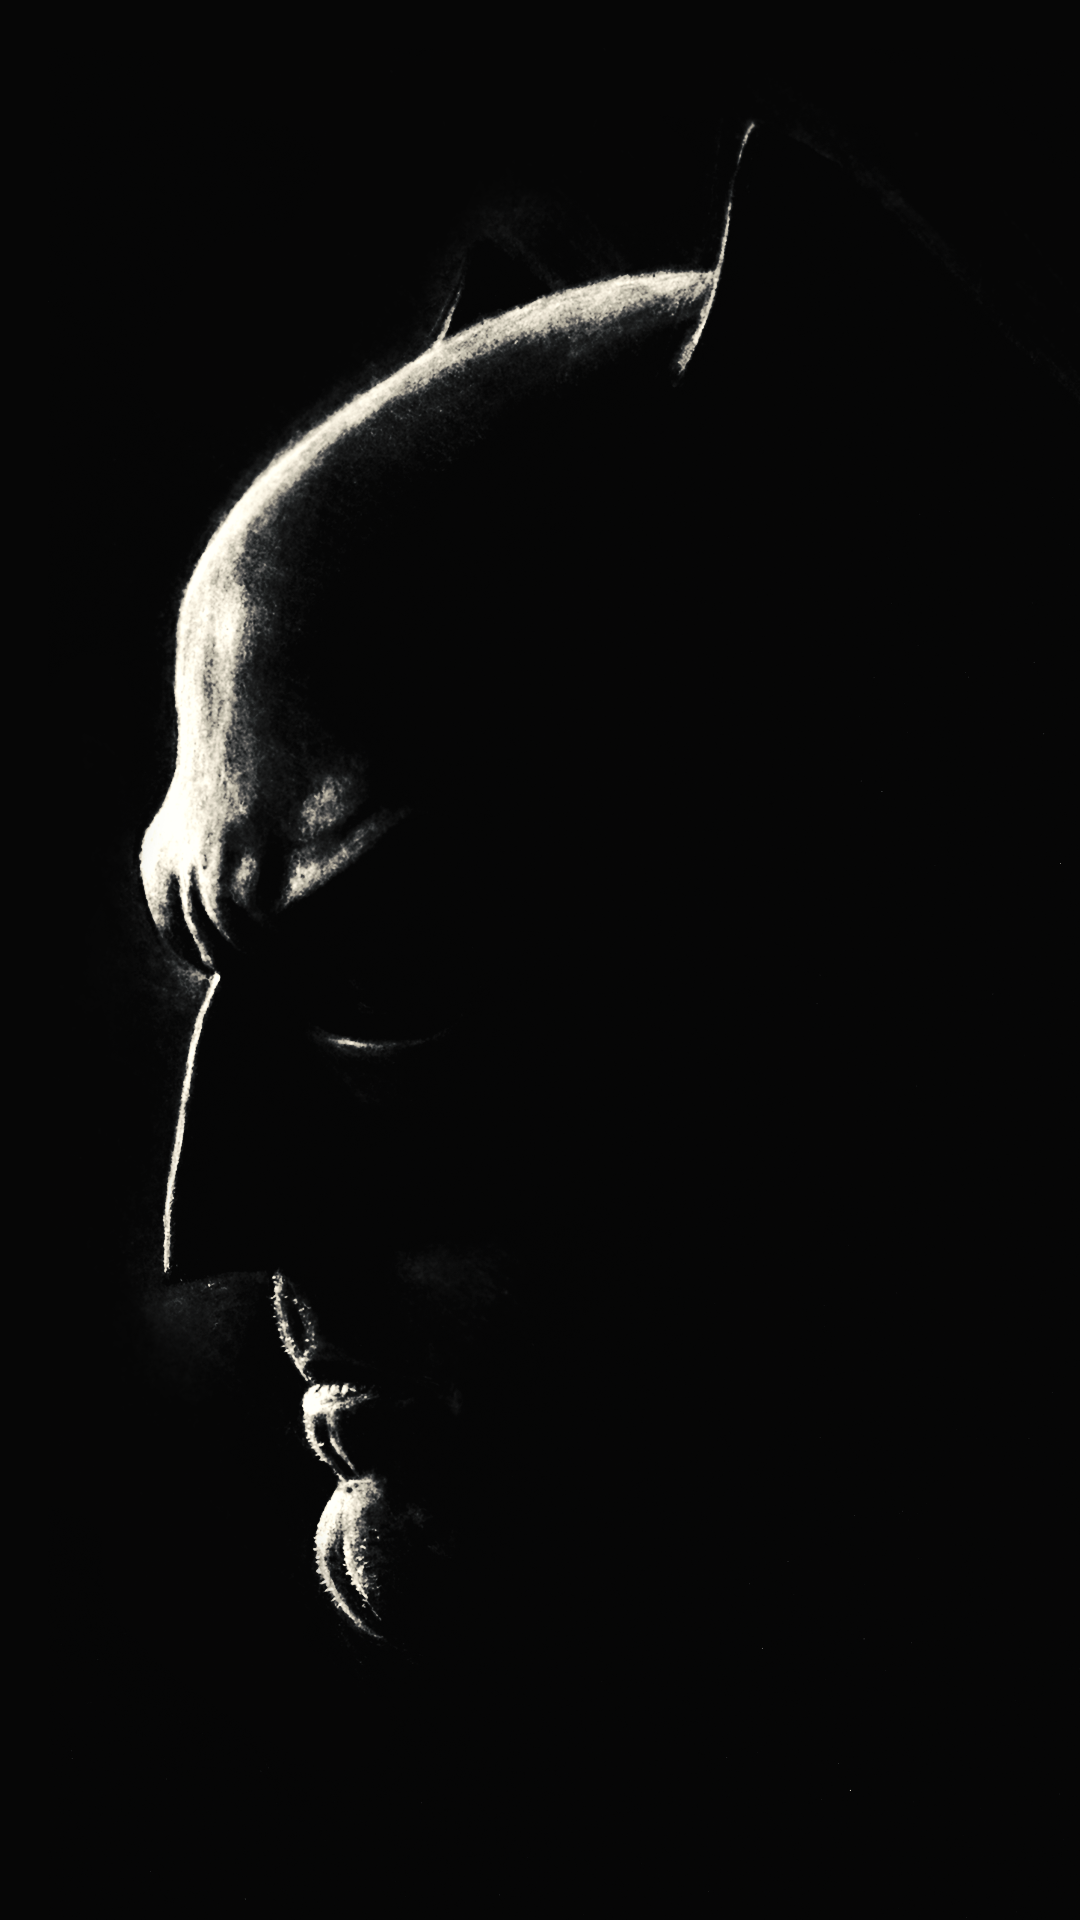 ultra hd batman black wallpaper for your mobile phone 0019